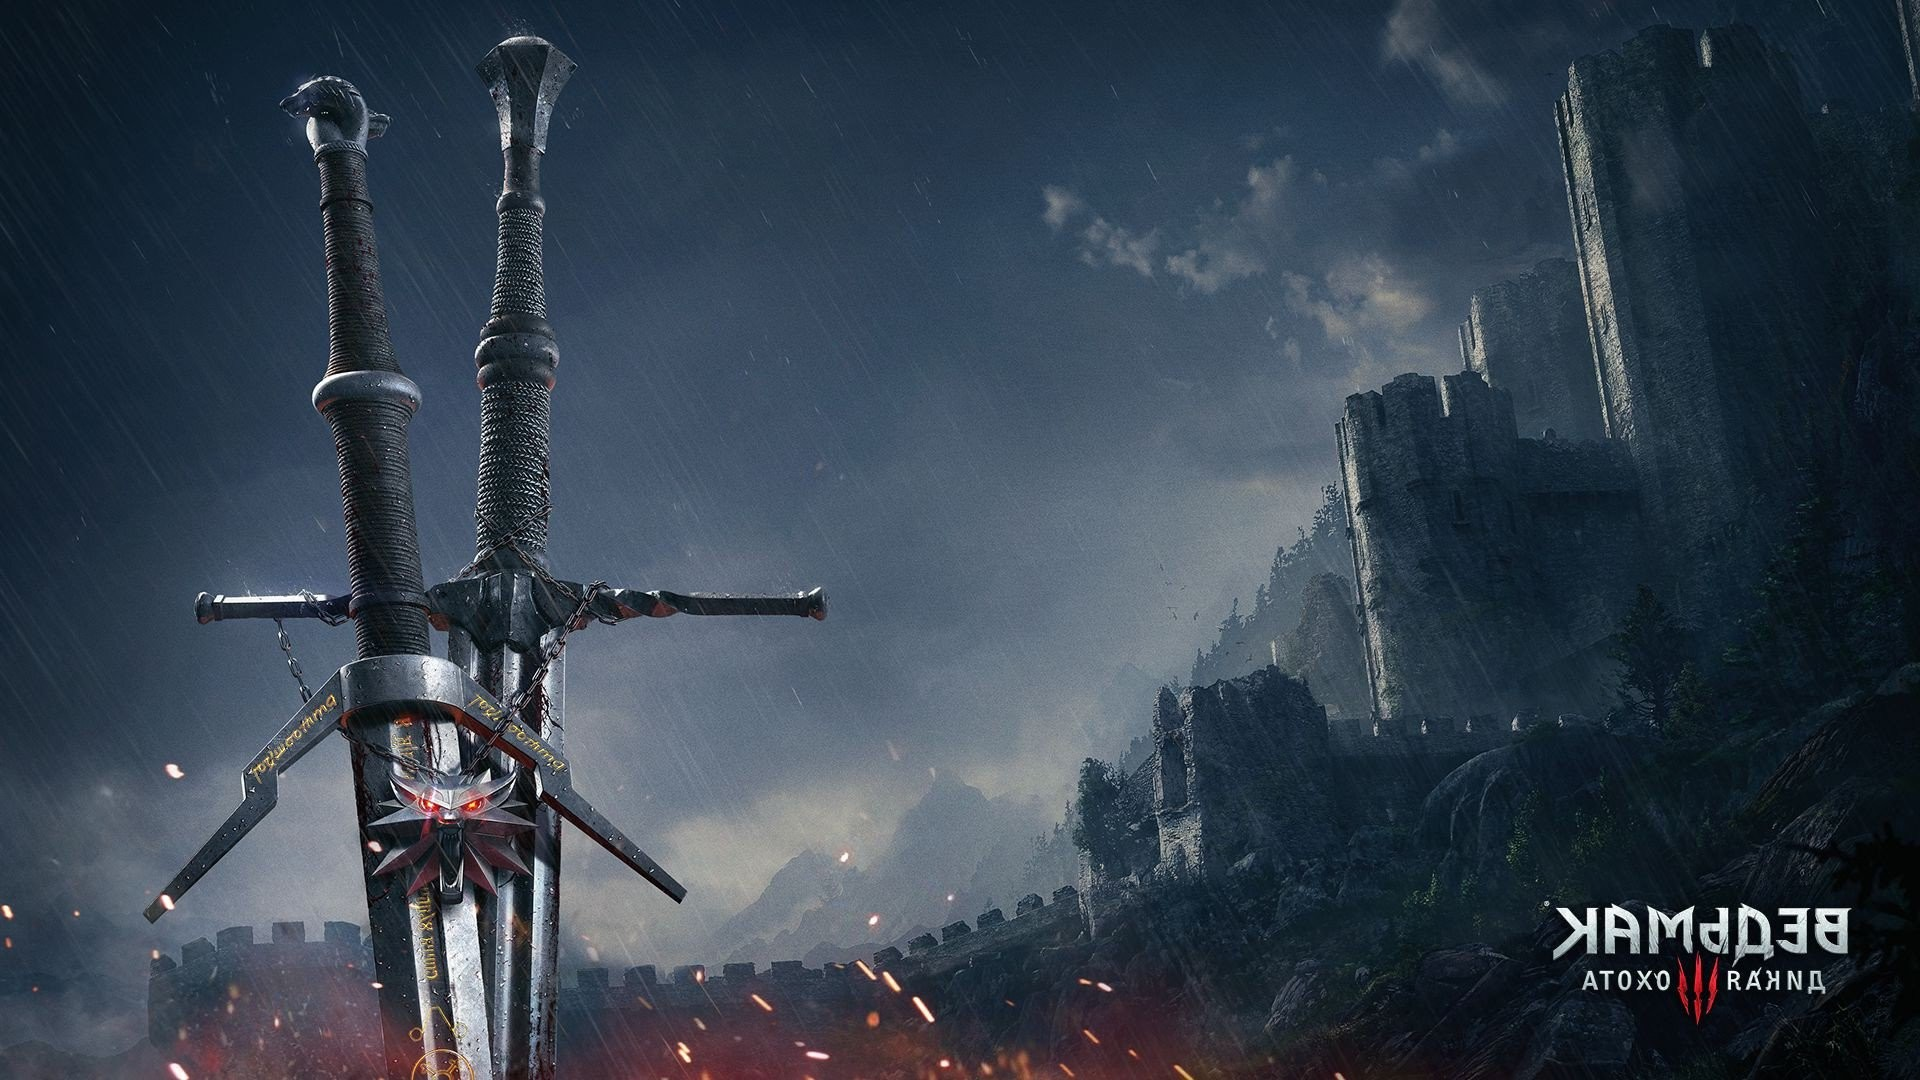 … download the witcher 3 sword hd 4k wallpapers in screen …